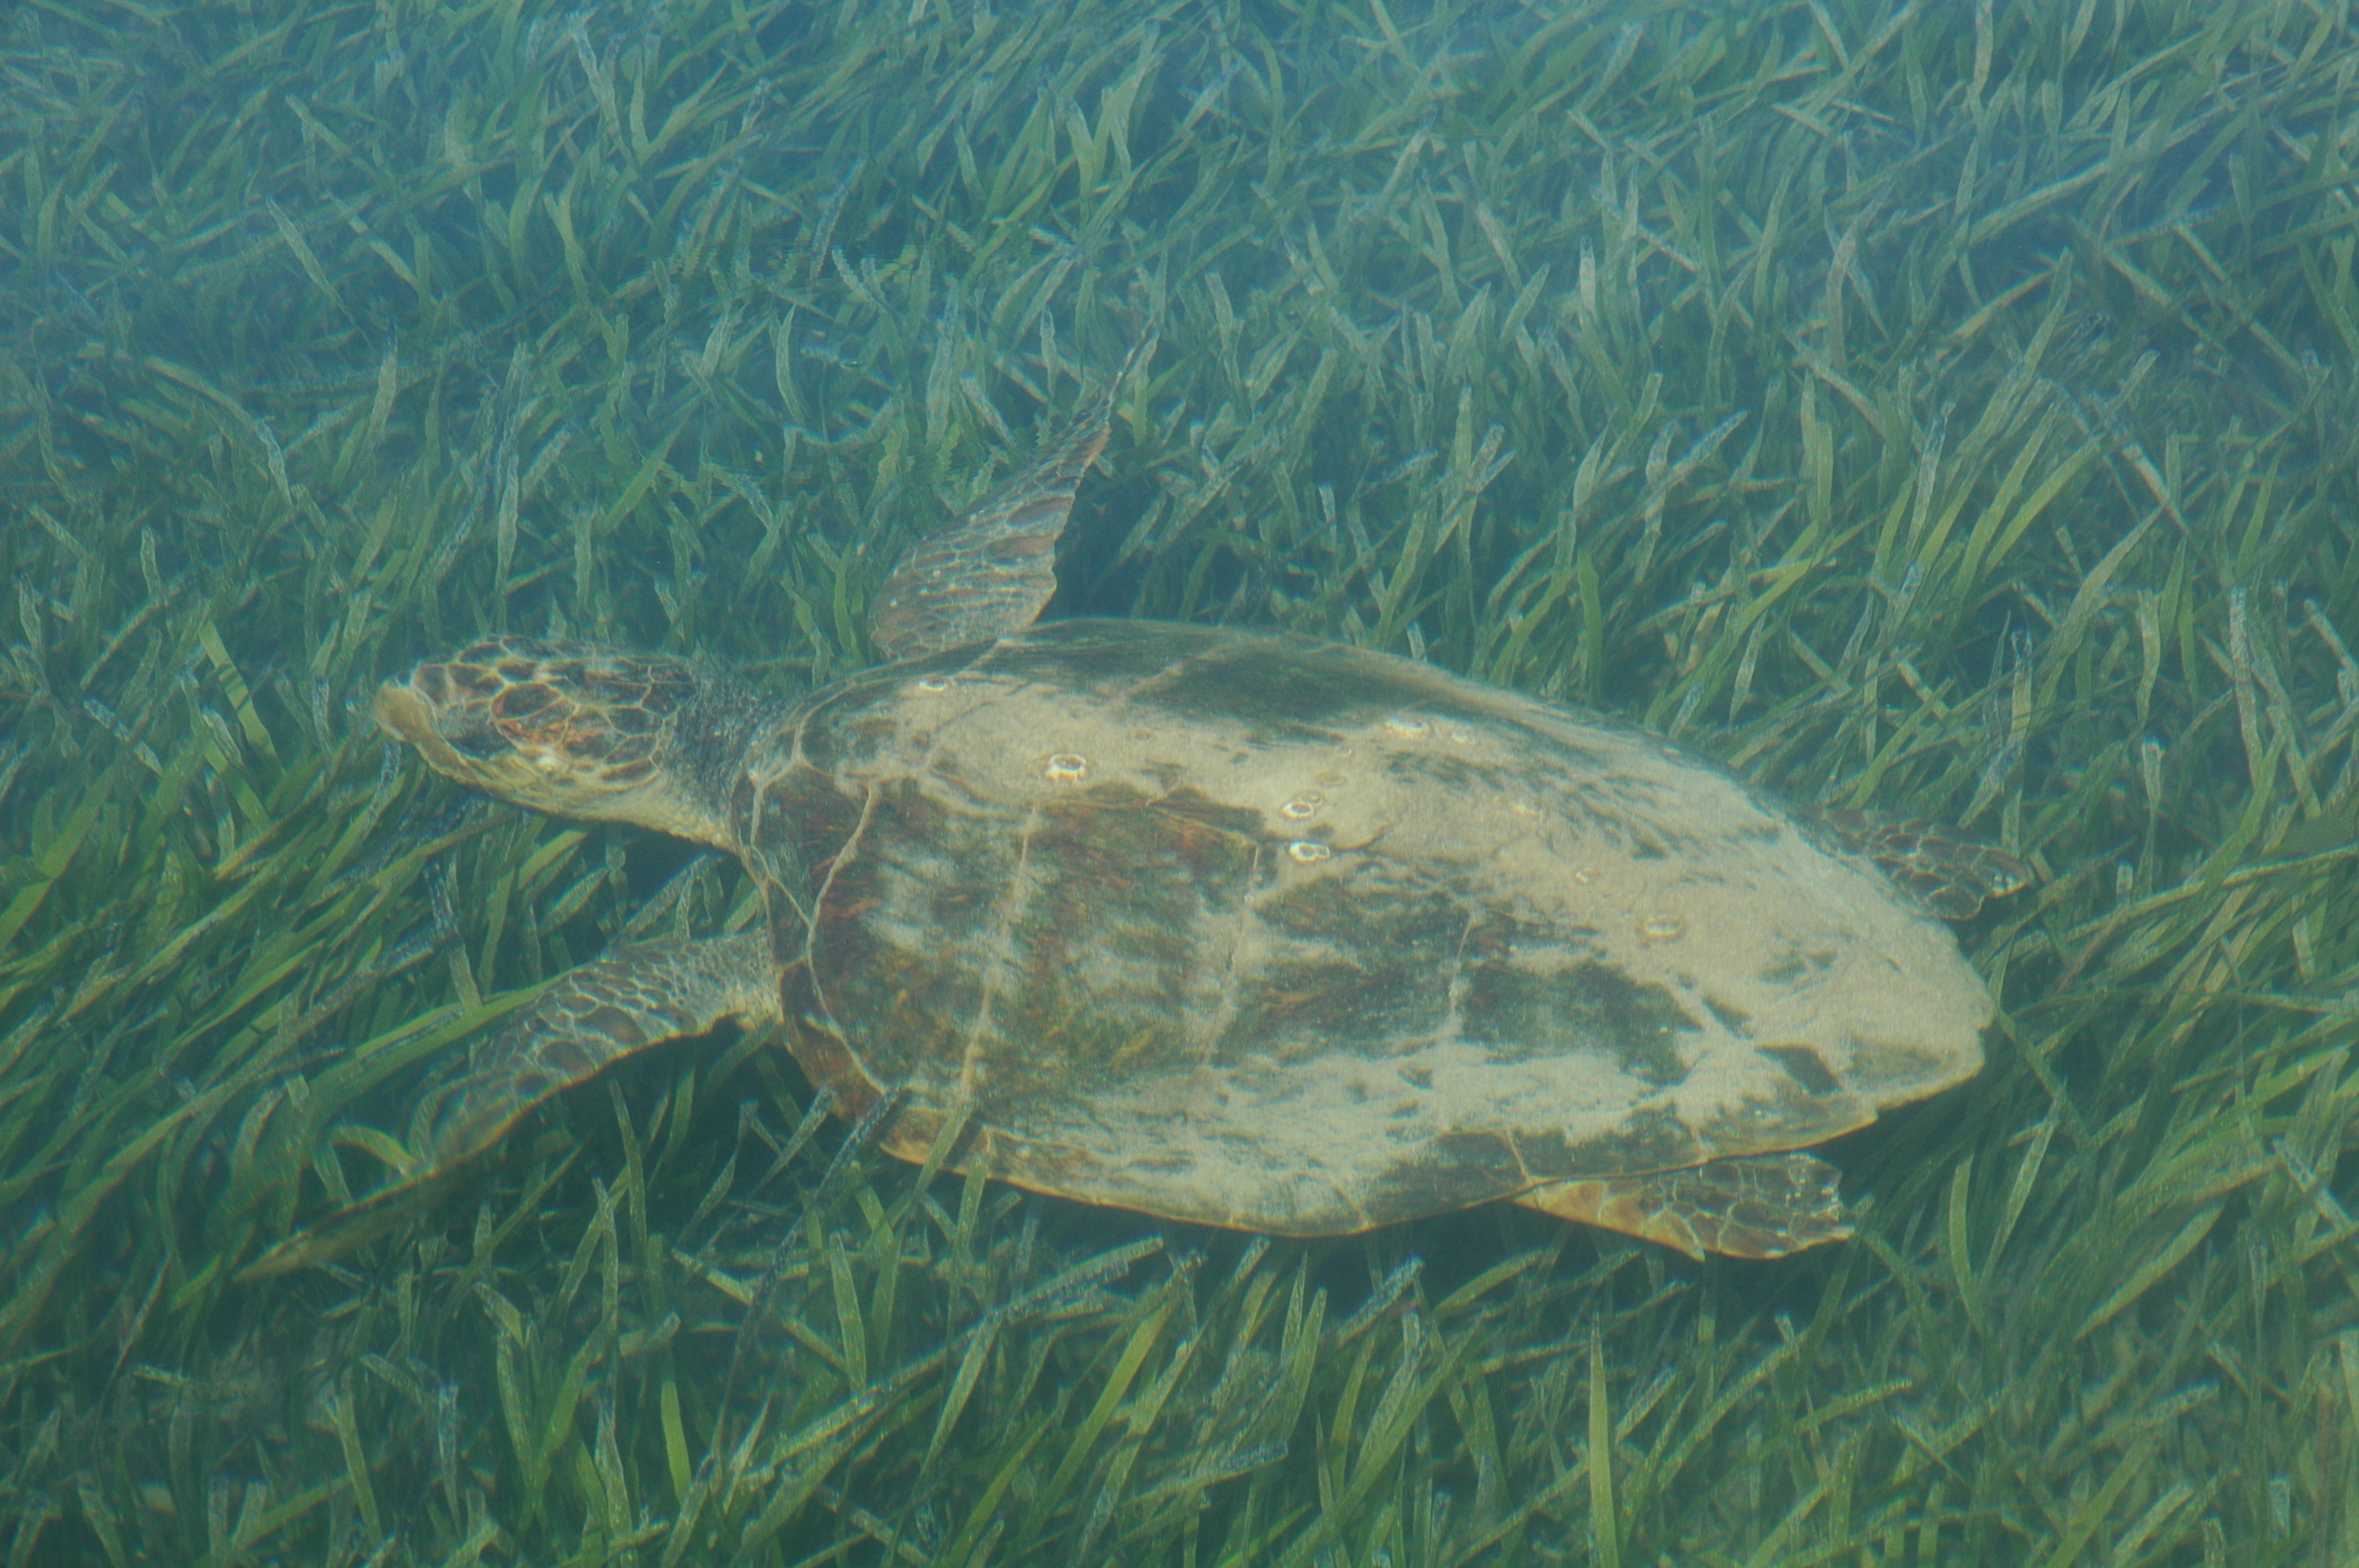 Seagrass beds ecosystem - Loggerhead Turtle Swimming Over Seagrass Beds Of Shark Bay Australia